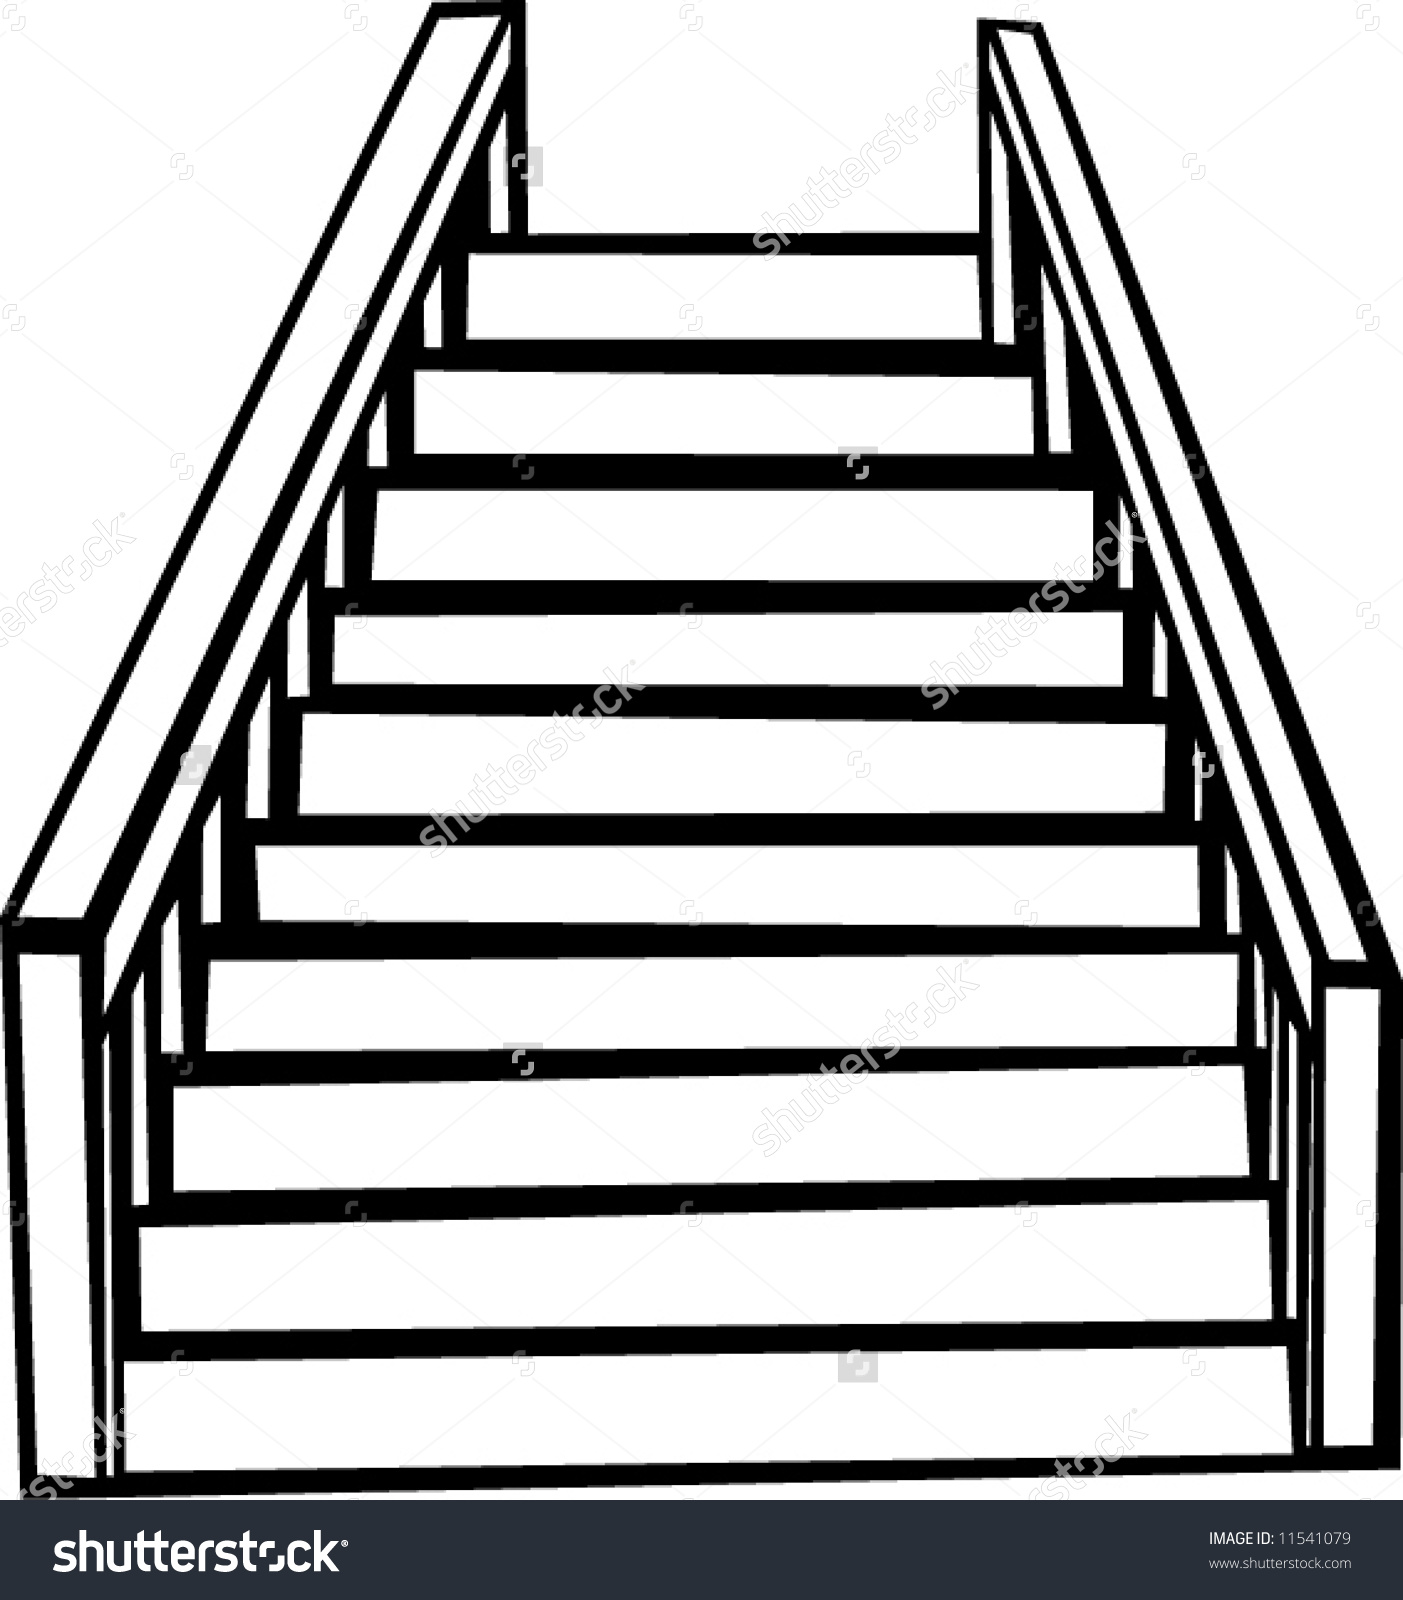 How To Clipart A Staircase.